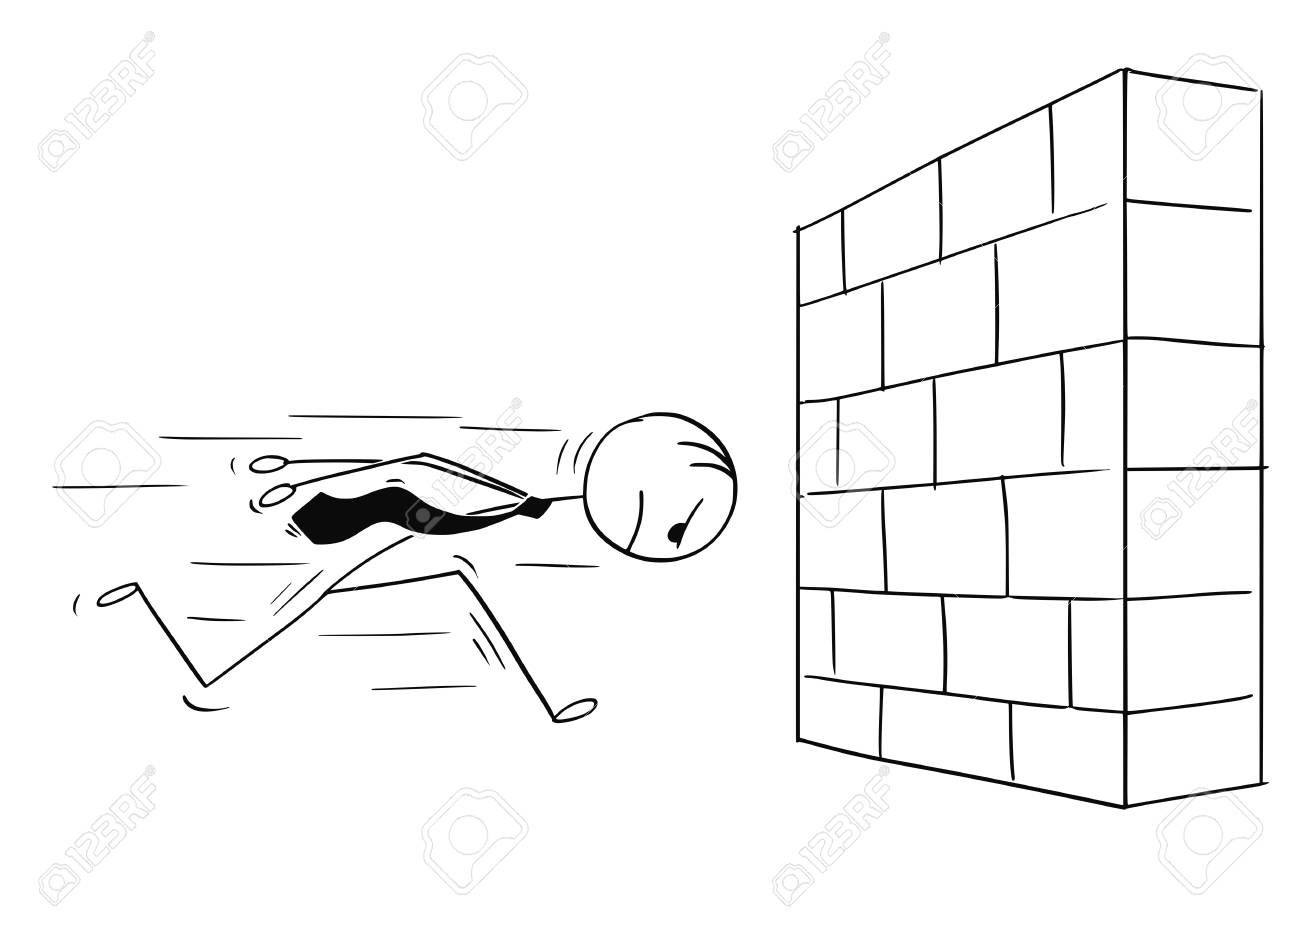 Cartoon stick man drawing conceptual illustration of headstrong businessman running against brick wall head first. Business concept of confidence and motivation. - 97618951